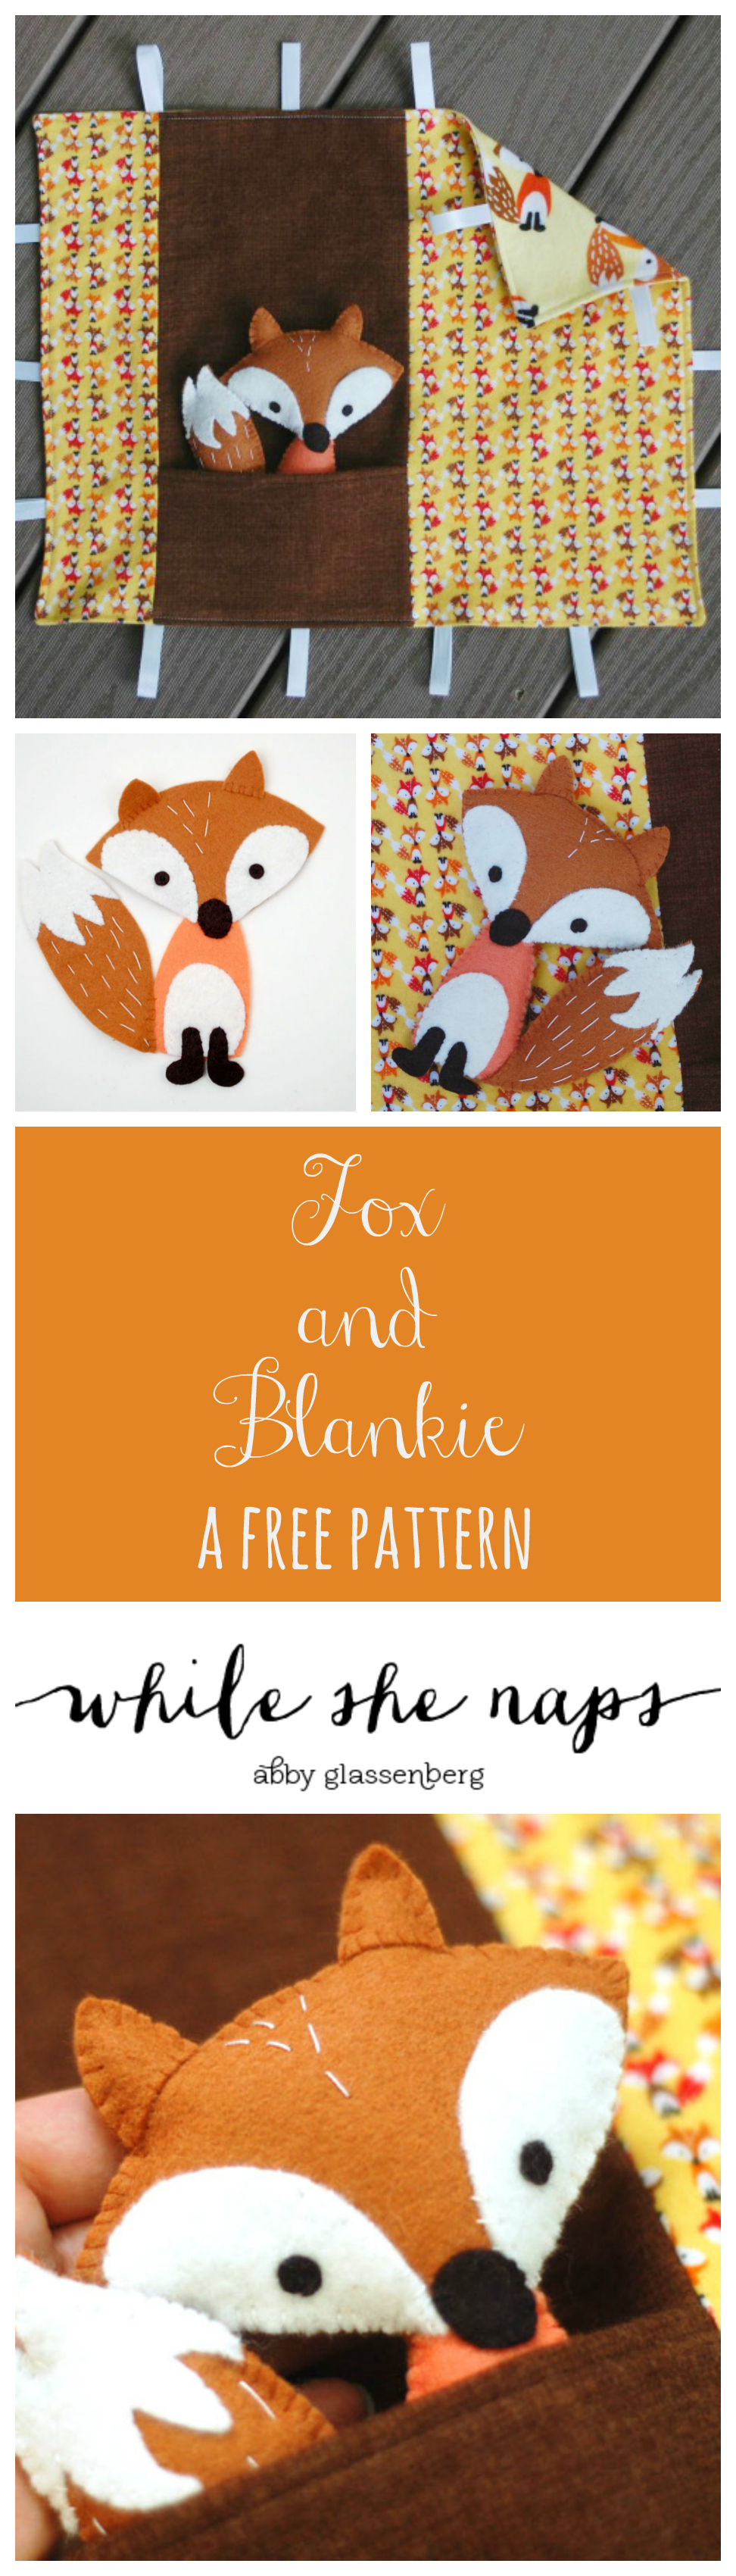 A free pattern for a Fox and Blankie.